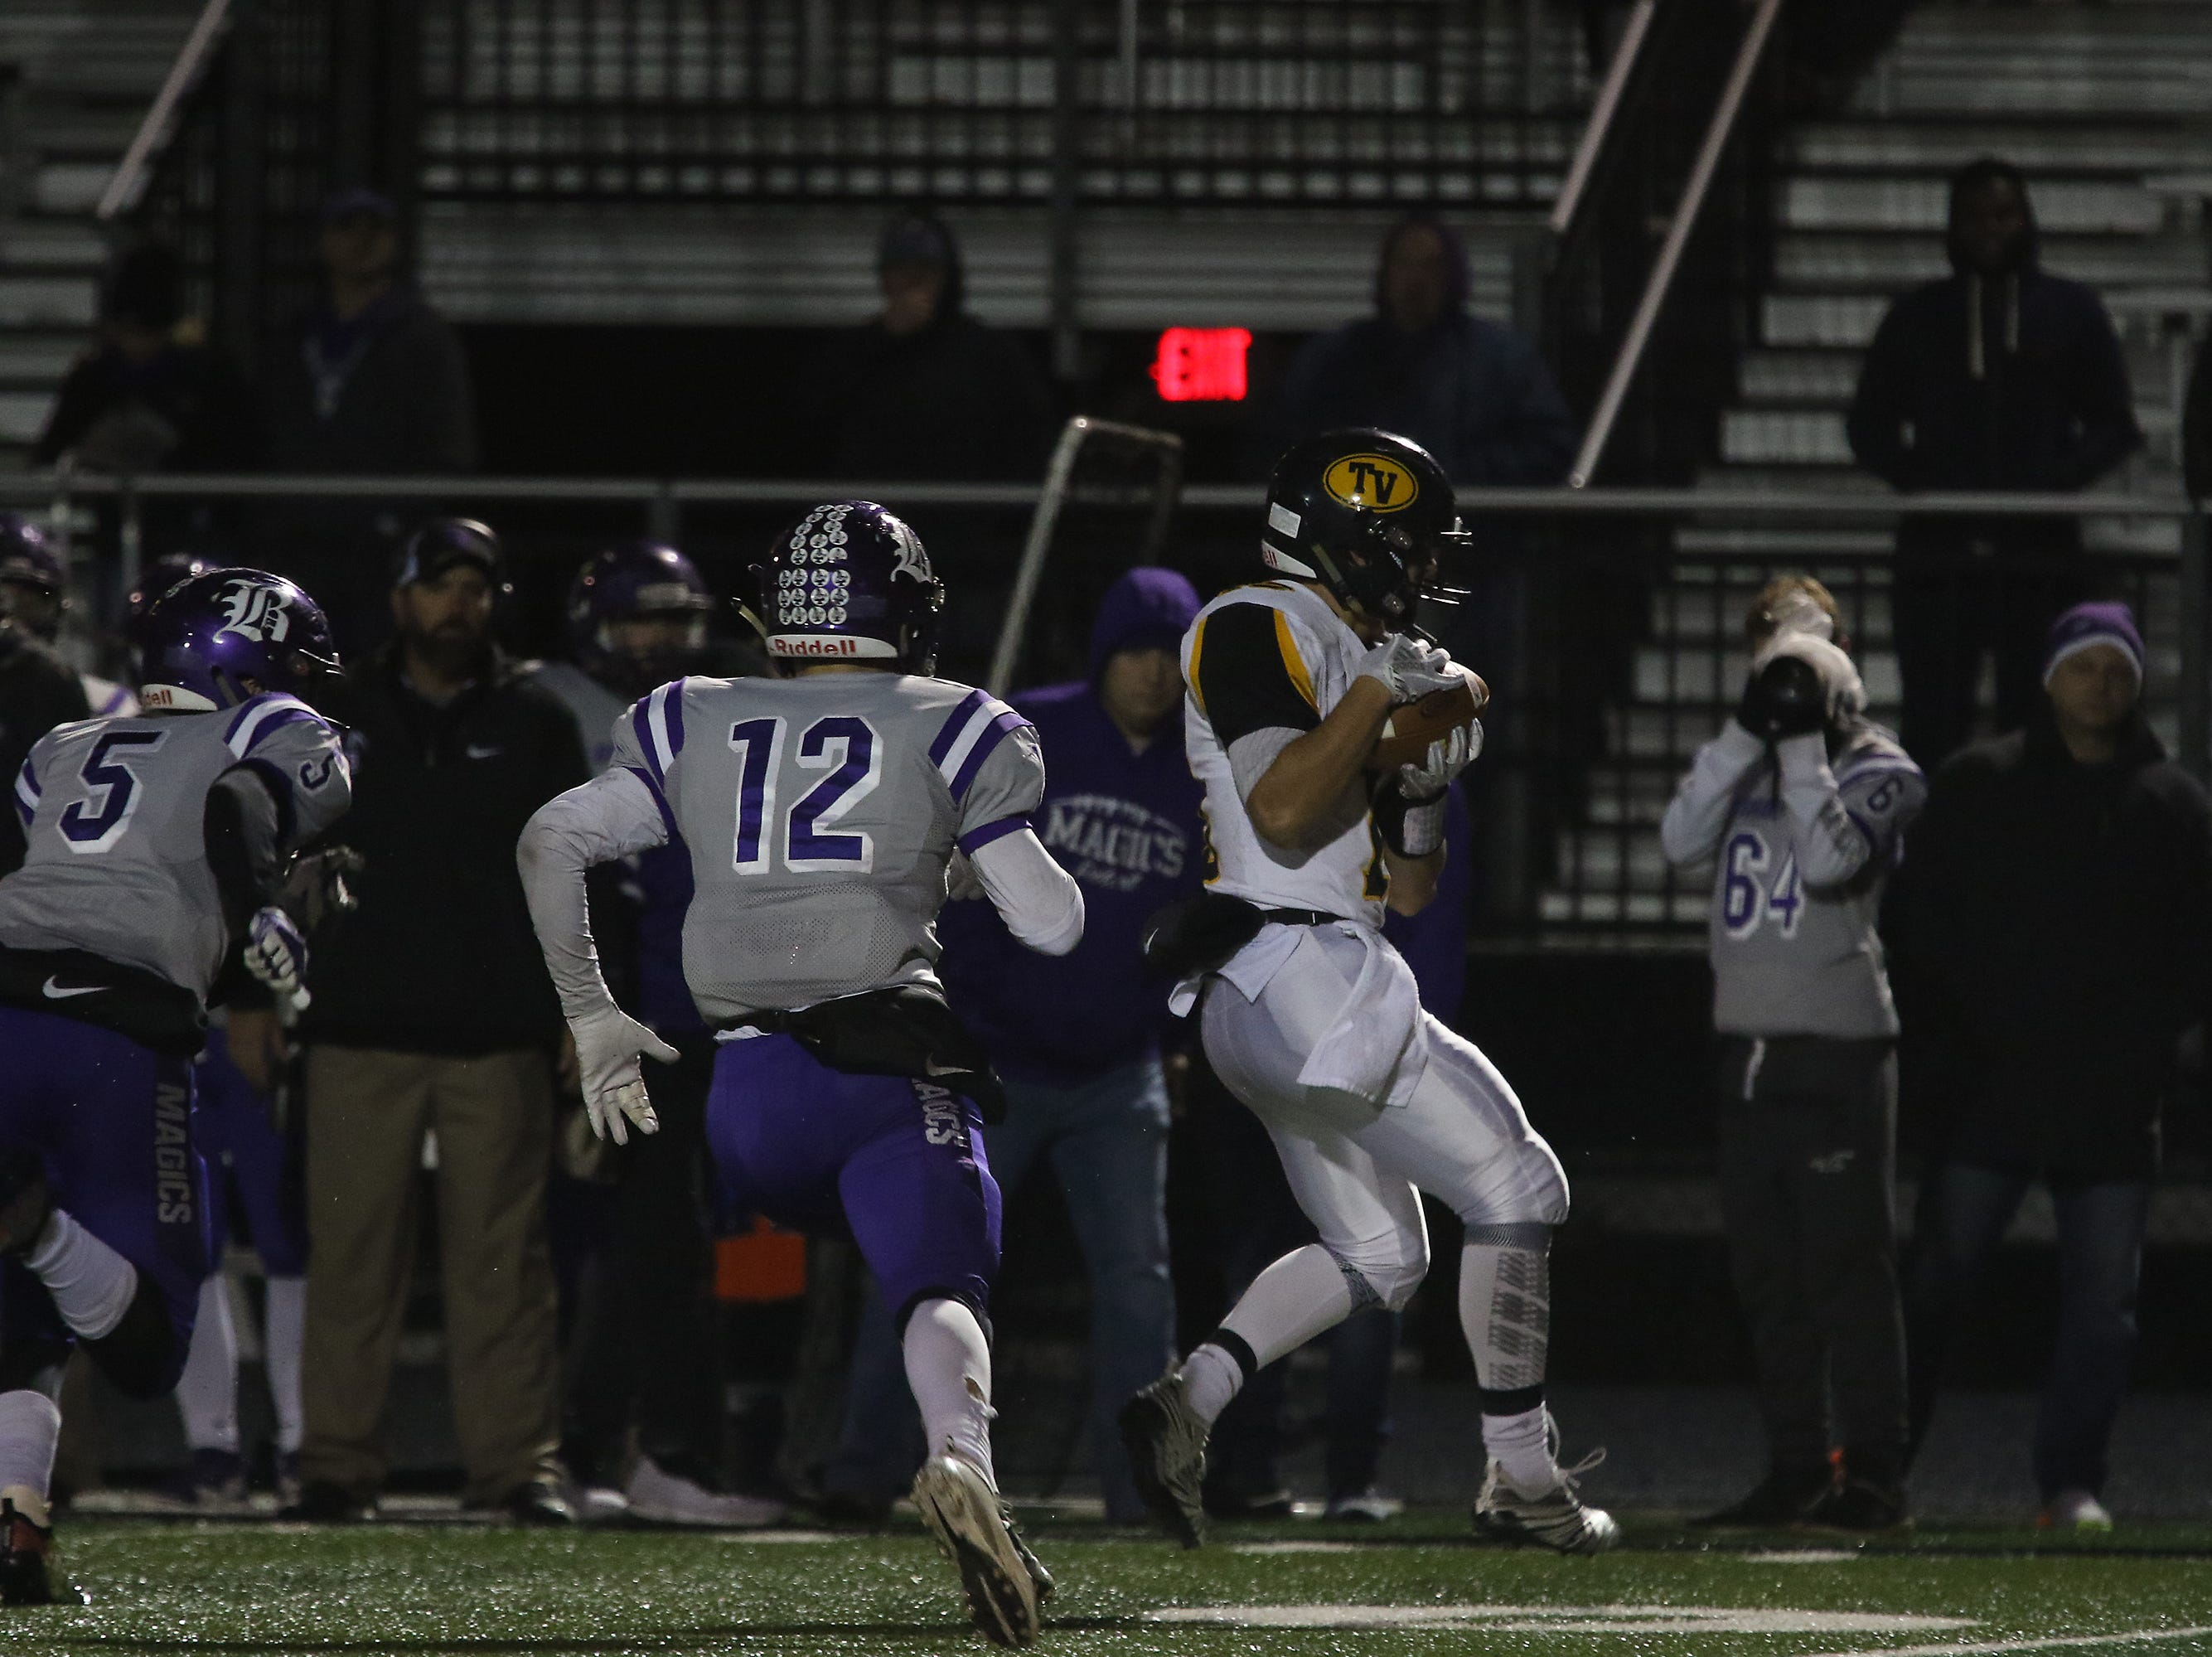 Tri-Valley's Aiden Fritter pulls in a pass against Barberton.